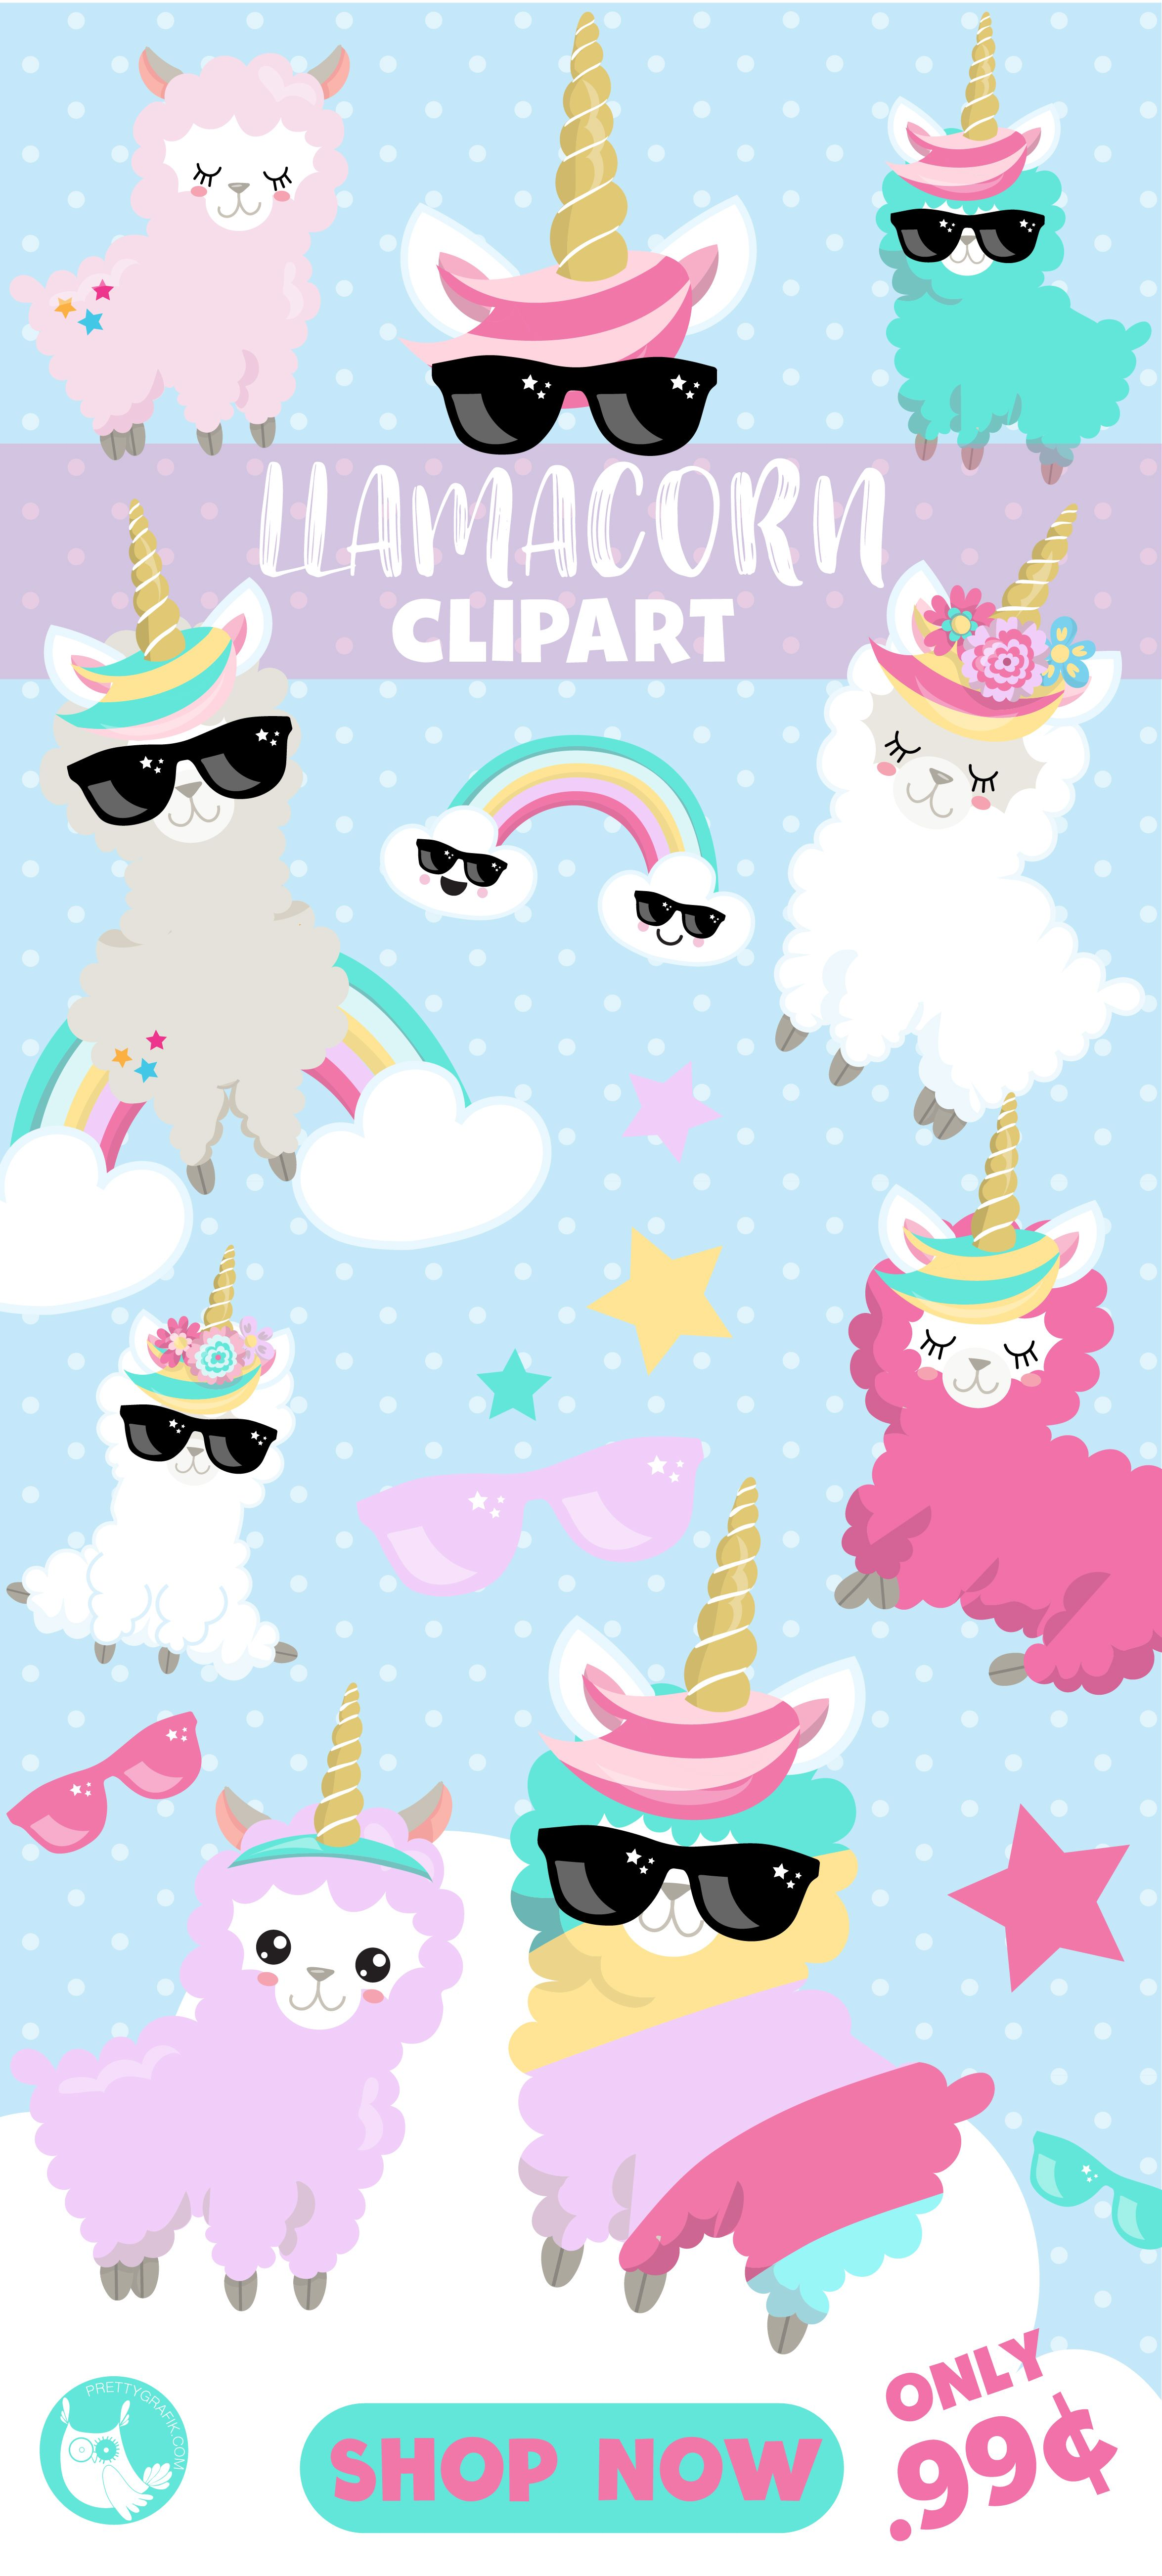 medium resolution of llamacorn llama clipart are only 99 and are great to use as party decorations for a llama themed birthday party